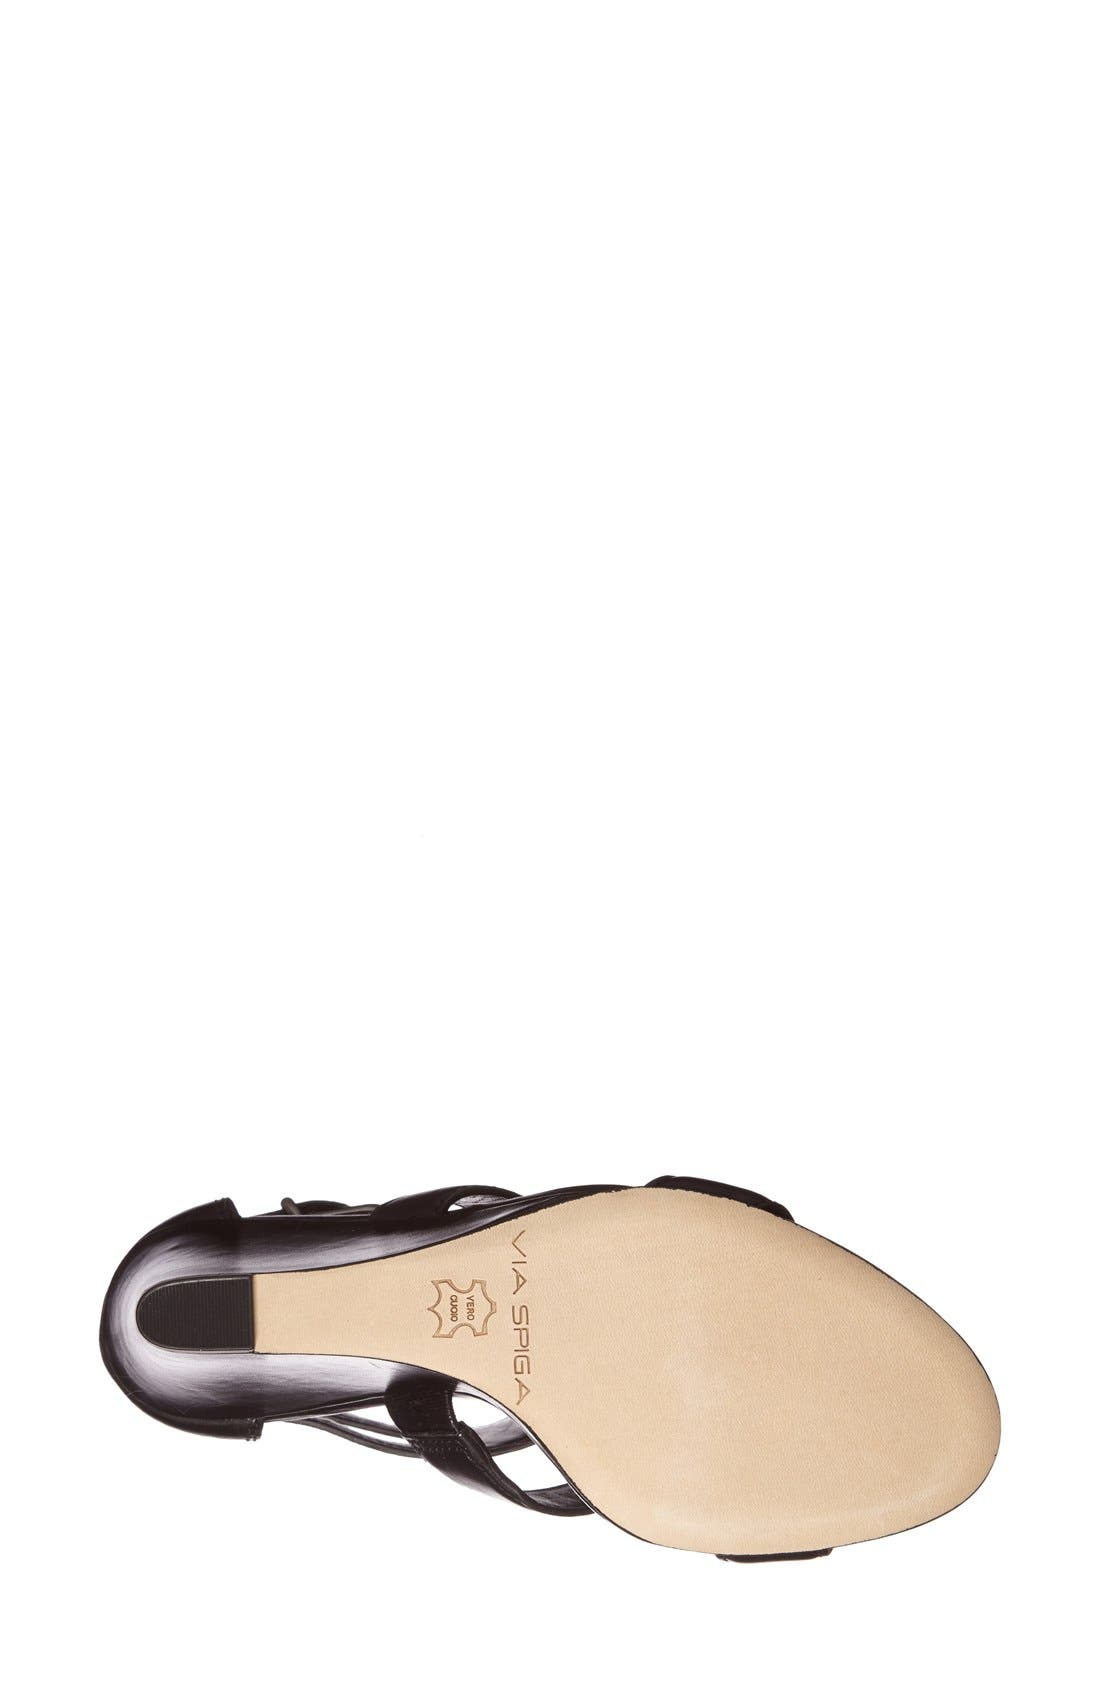 Alternate Image 3  - Via Spiga 'Fernanda' Wedge Leather Sandal (Women)